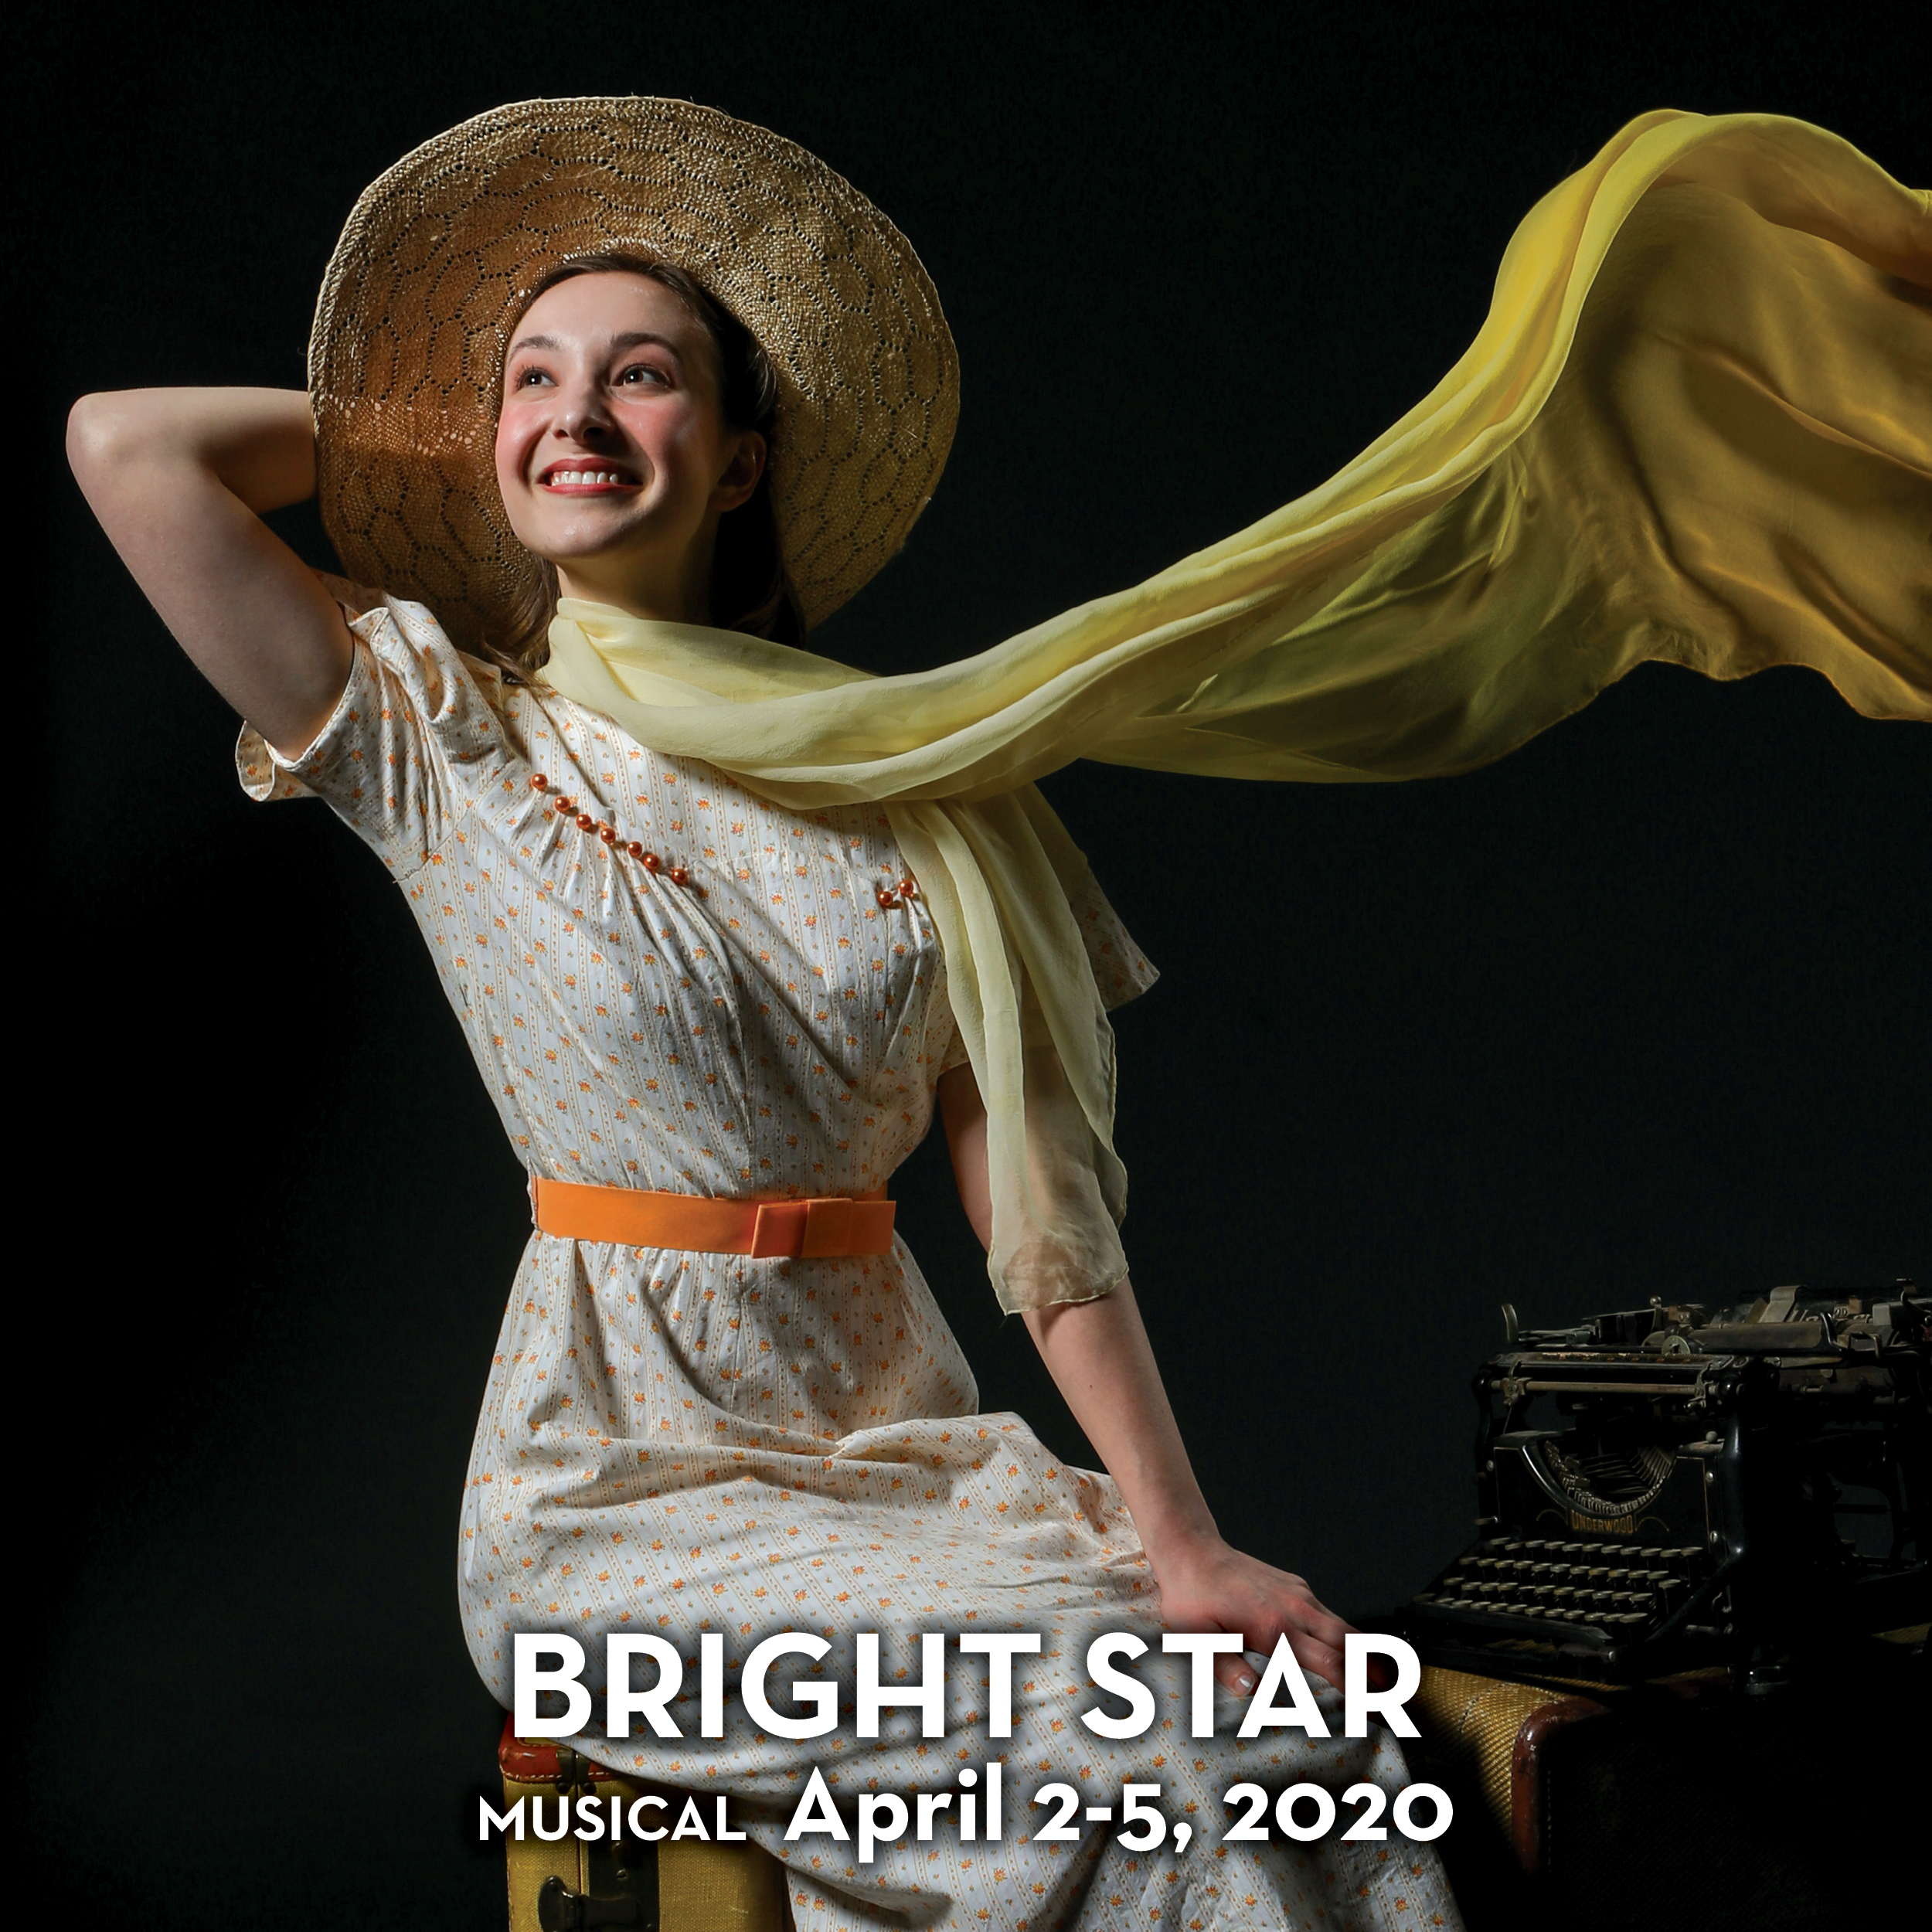 Bright Star SQUARE WITH TITLES